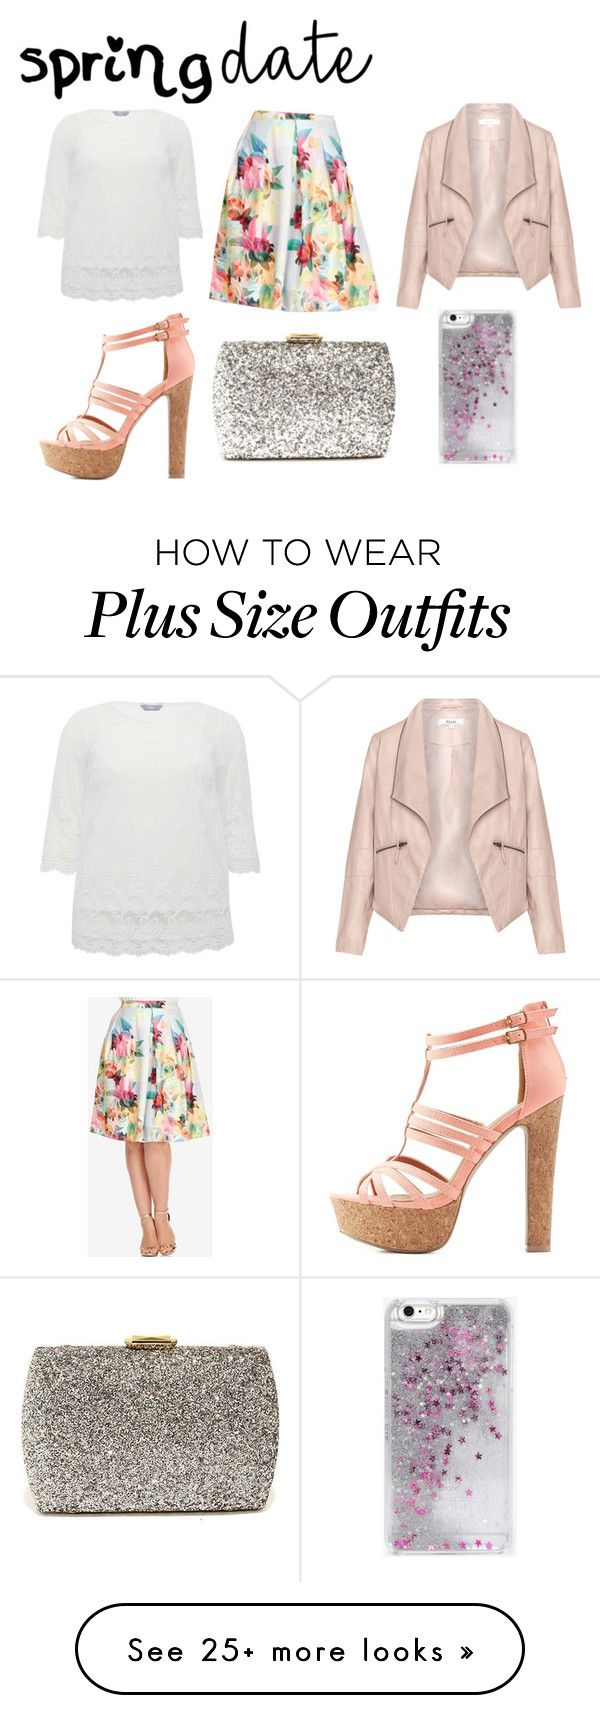 """""""Spring date"""" by tigerlily789 on Polyvore featuring Zizzi, M&Co, City Chic, Charlotte Russe, Lulu*s and Skinnydip"""